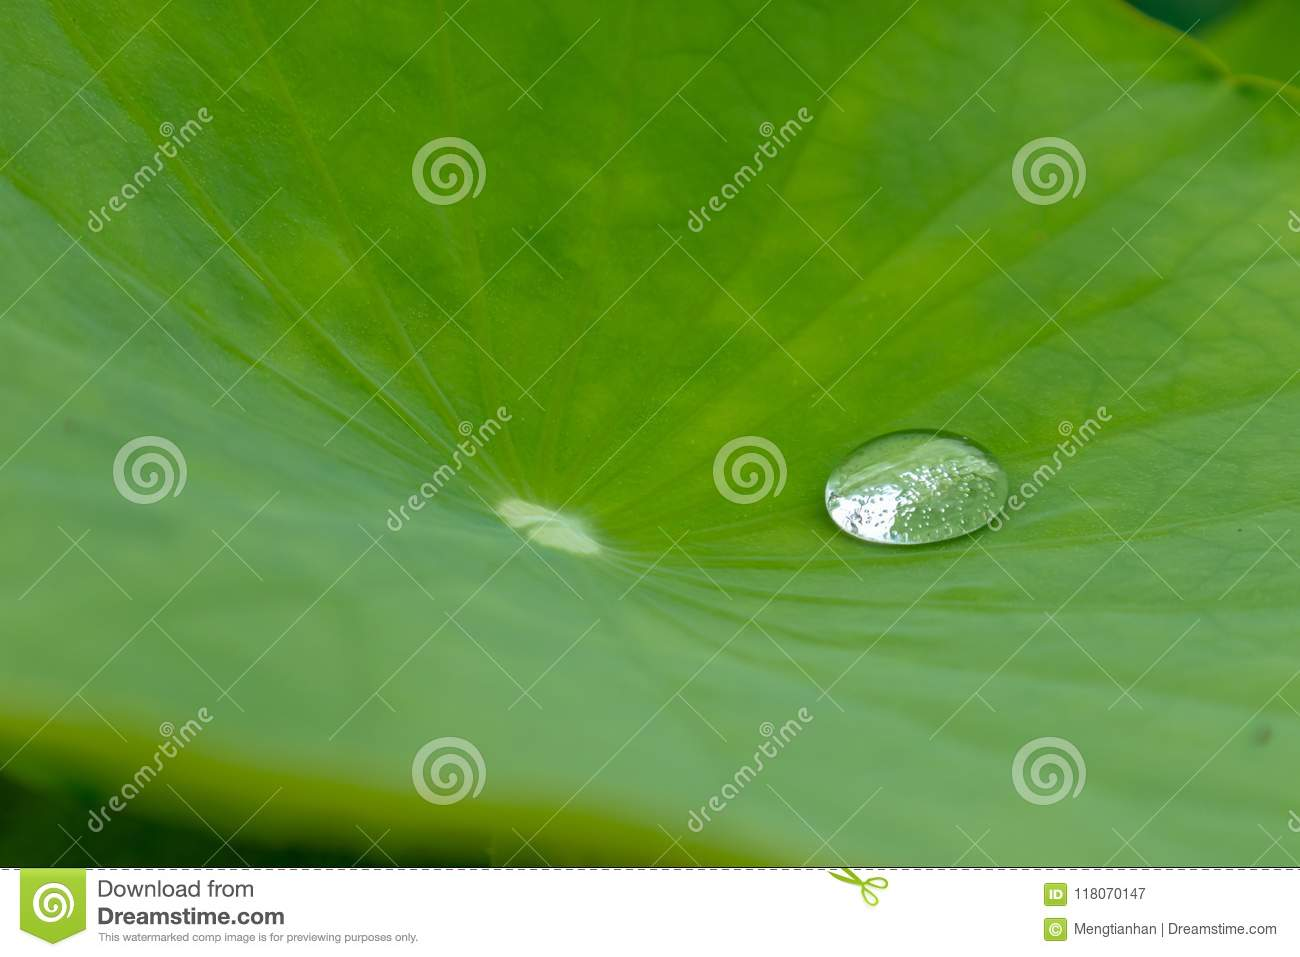 The dew is rolling in the lotus leaf